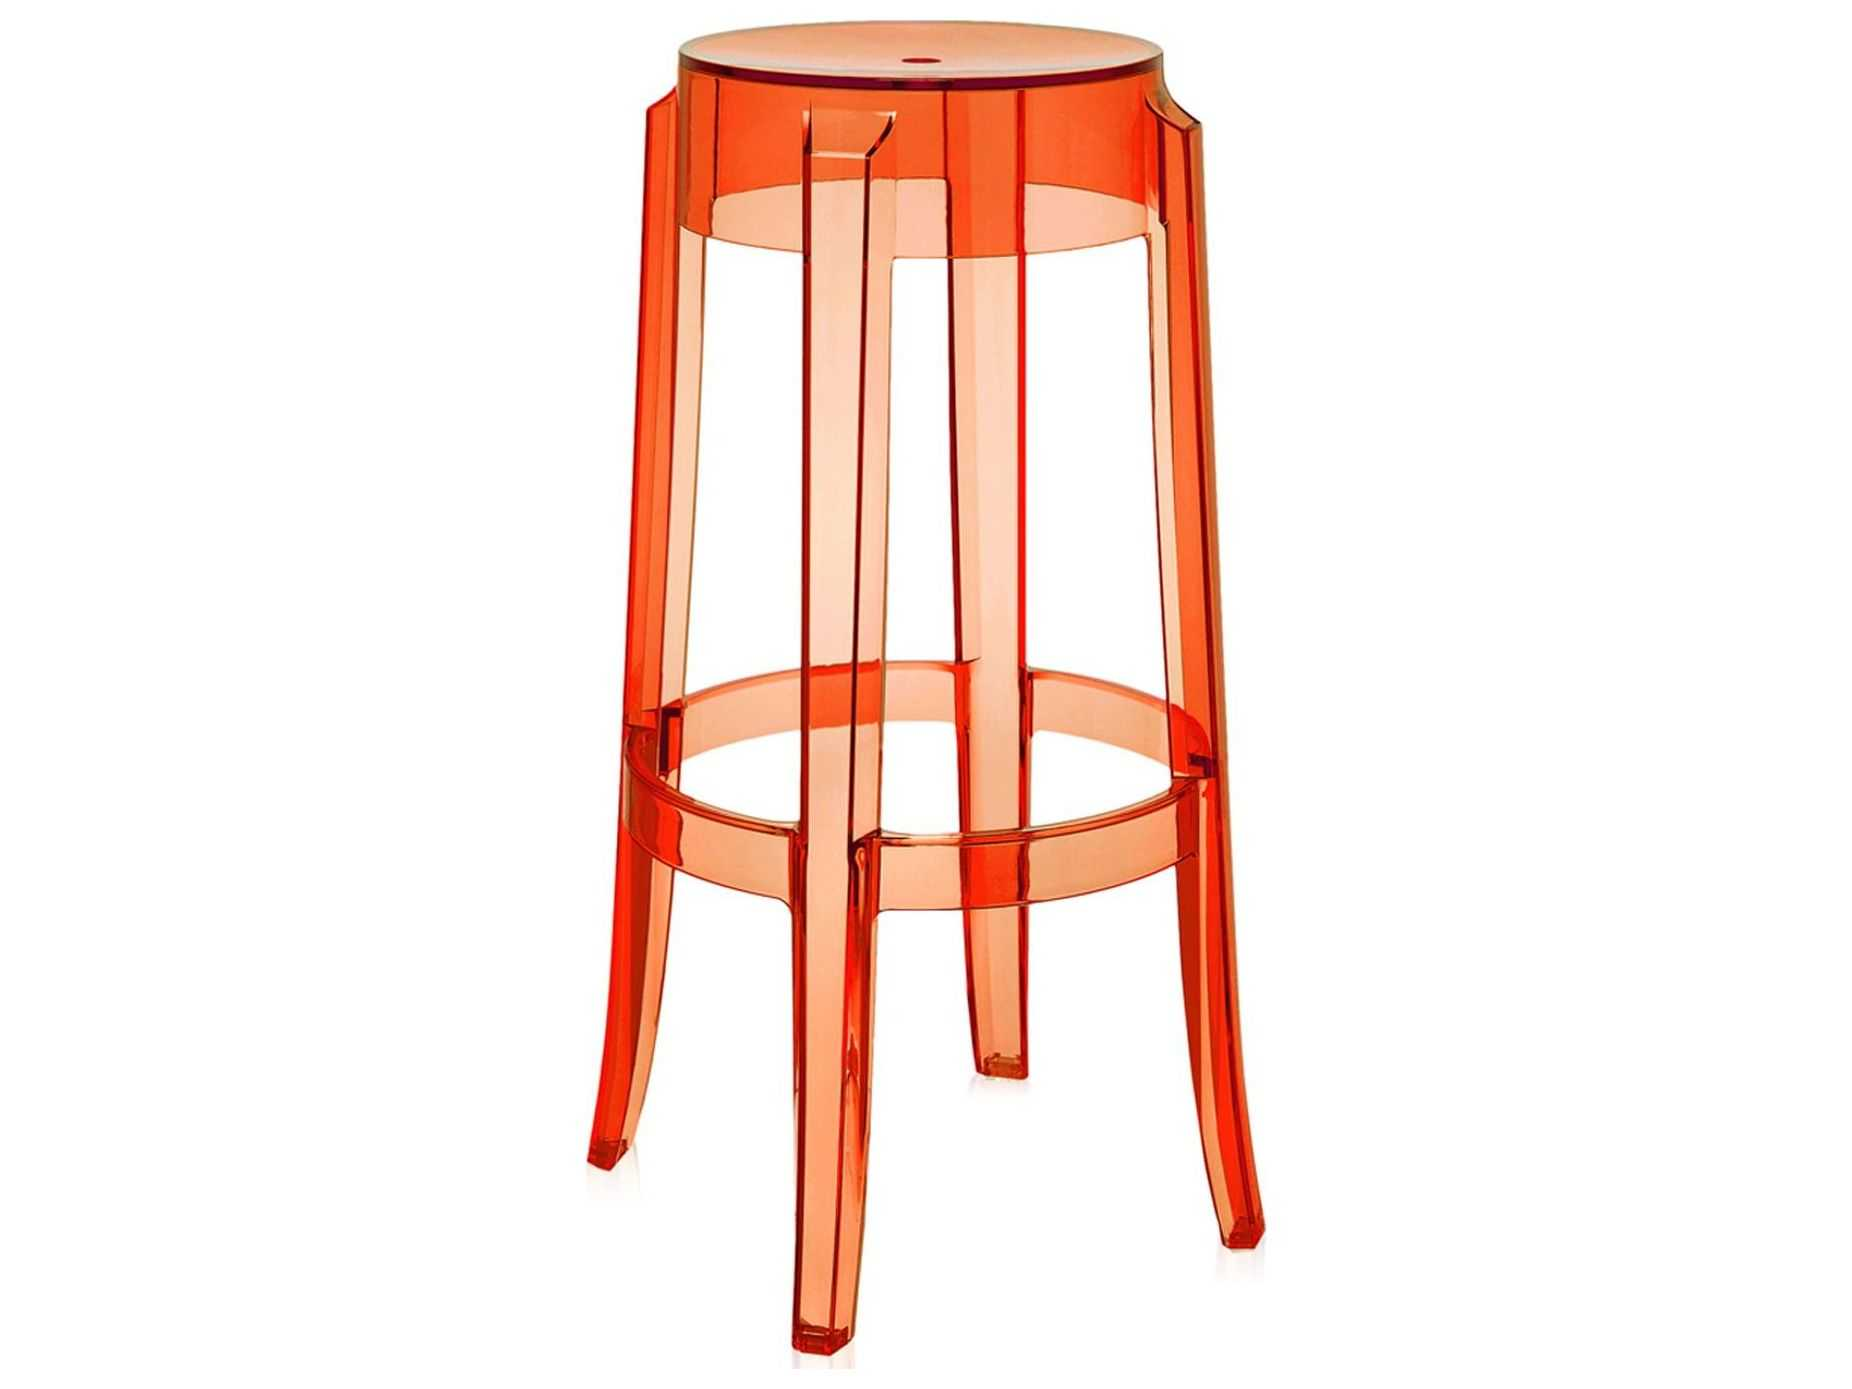 Miraculous Kartell Outdoor Charles Ghost Transparent Orange Resin Bar Stool Sold In 2 Bralicious Painted Fabric Chair Ideas Braliciousco